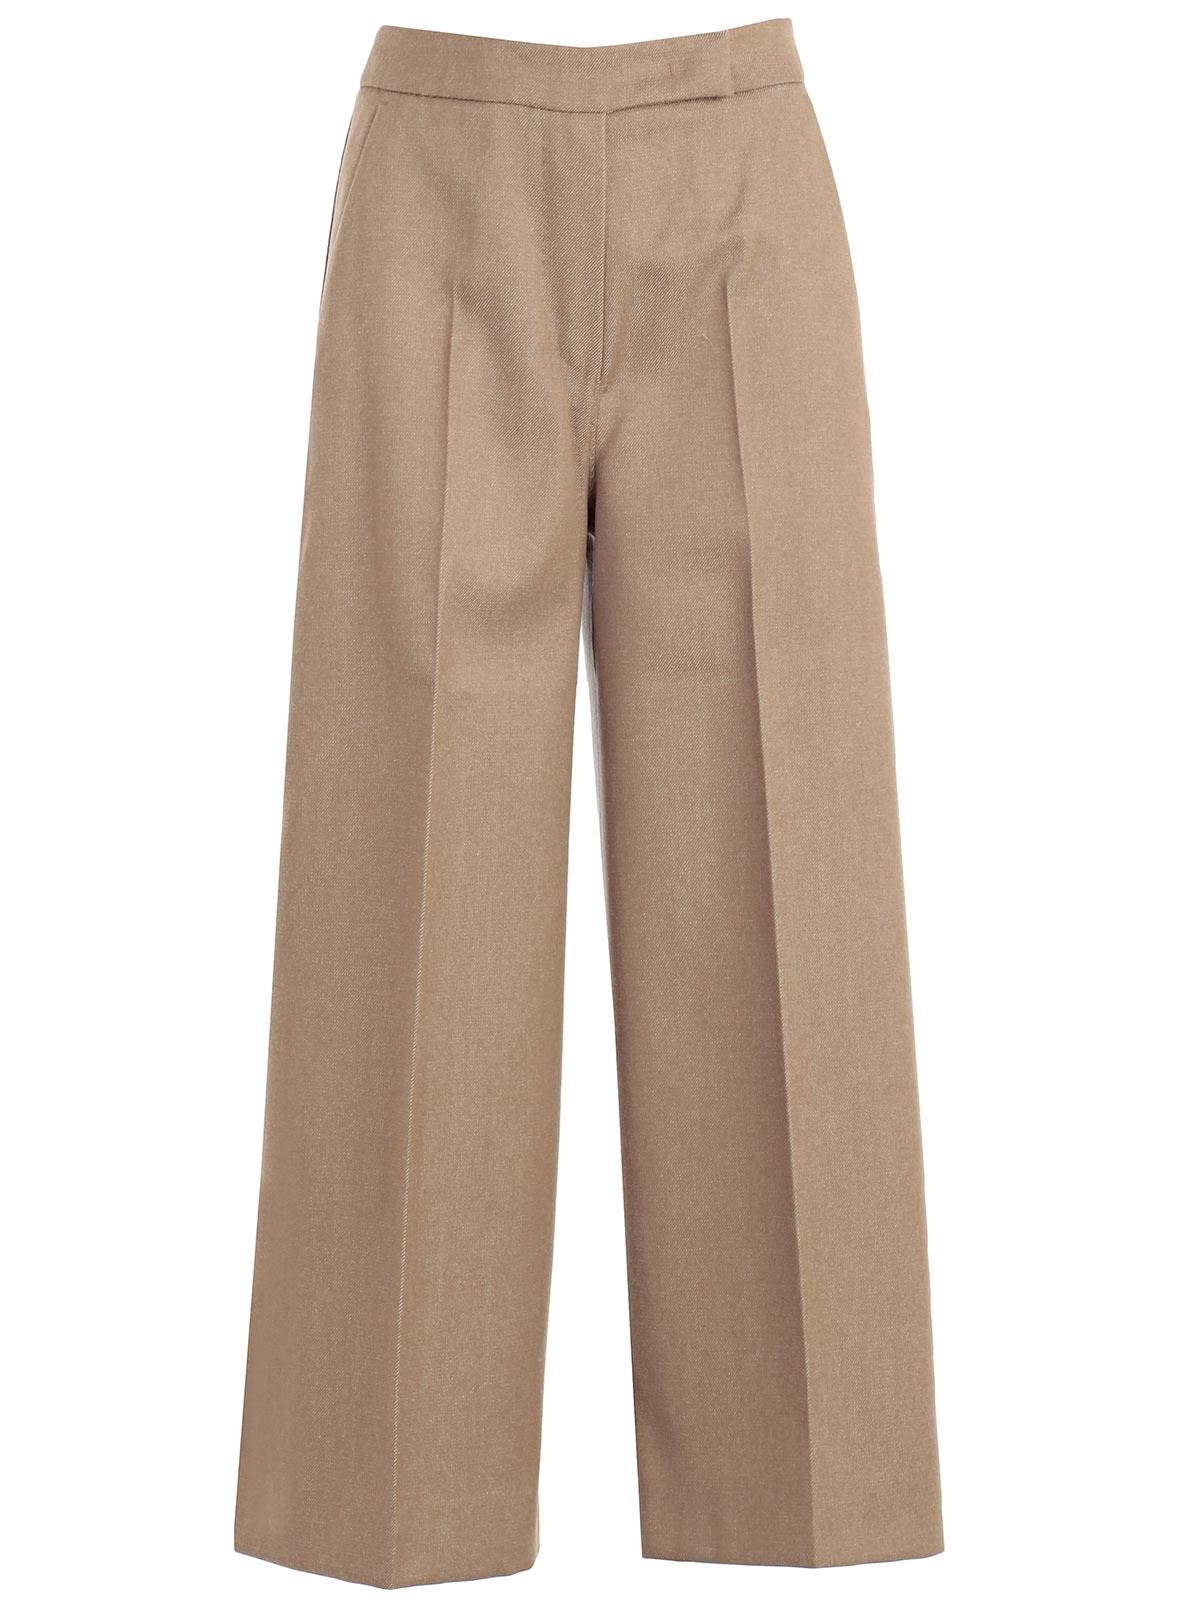 WIDE LEG TROUSERS from Italist.com